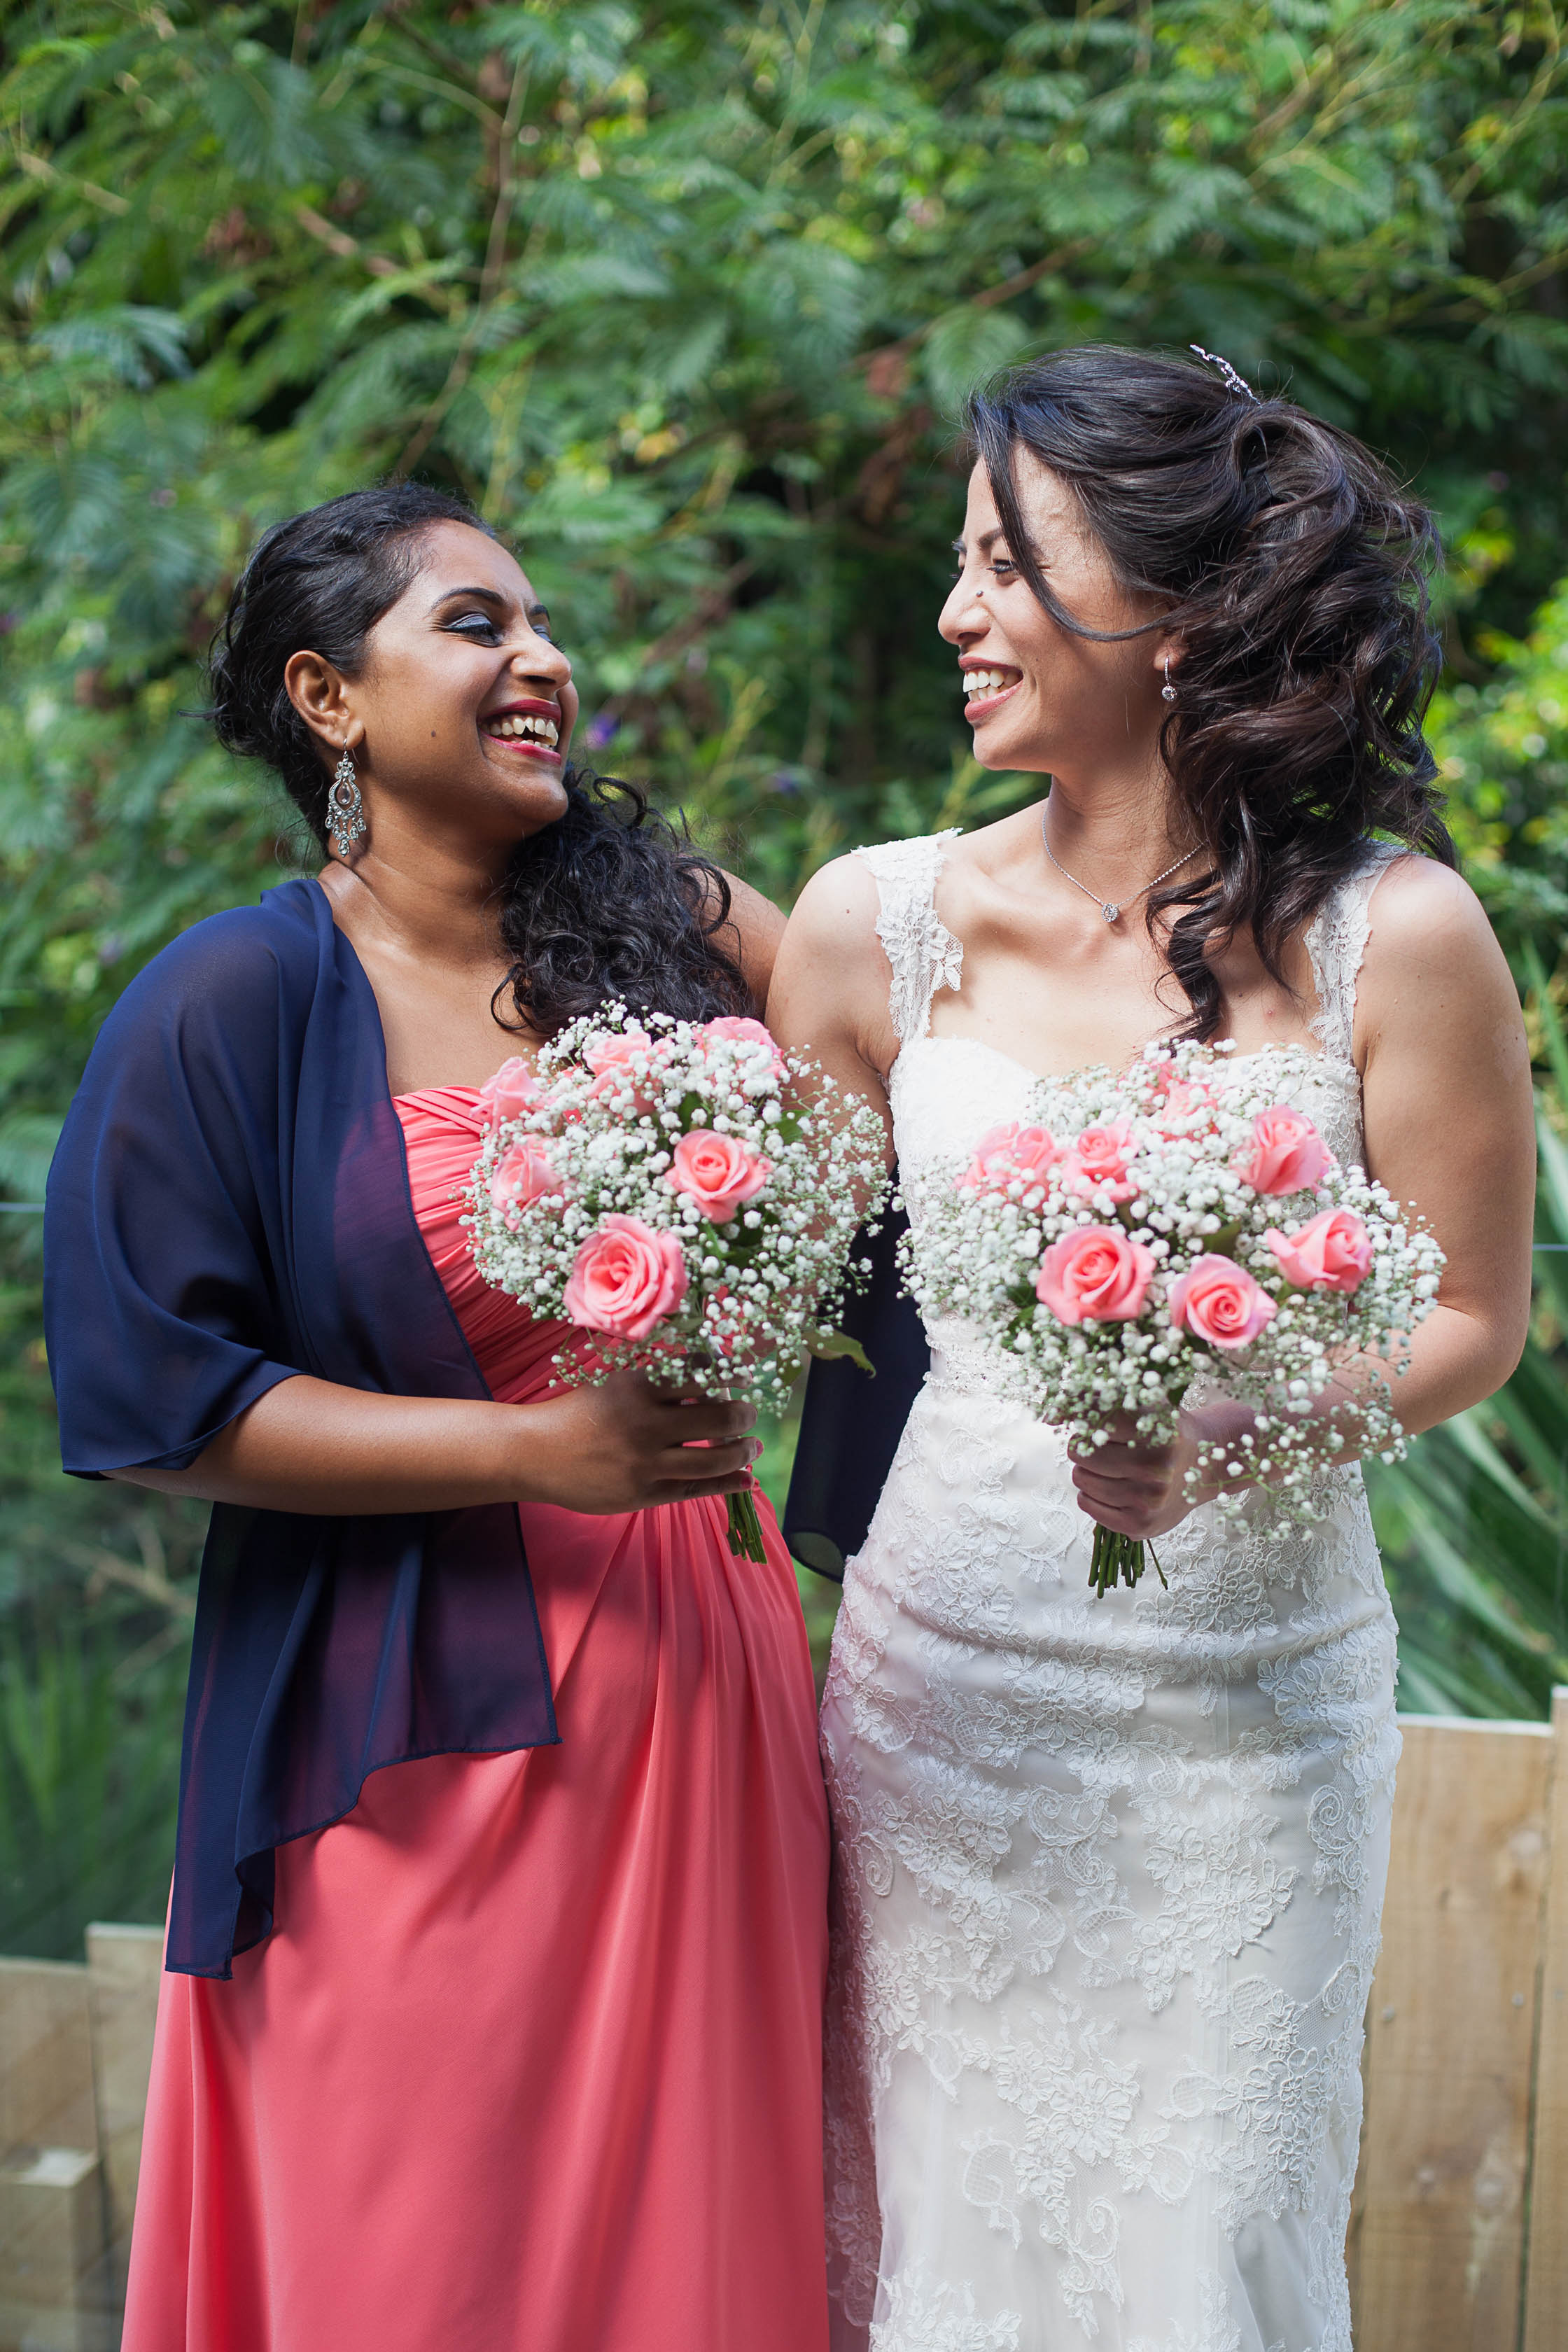 Bride and Bridesmaid Laughing